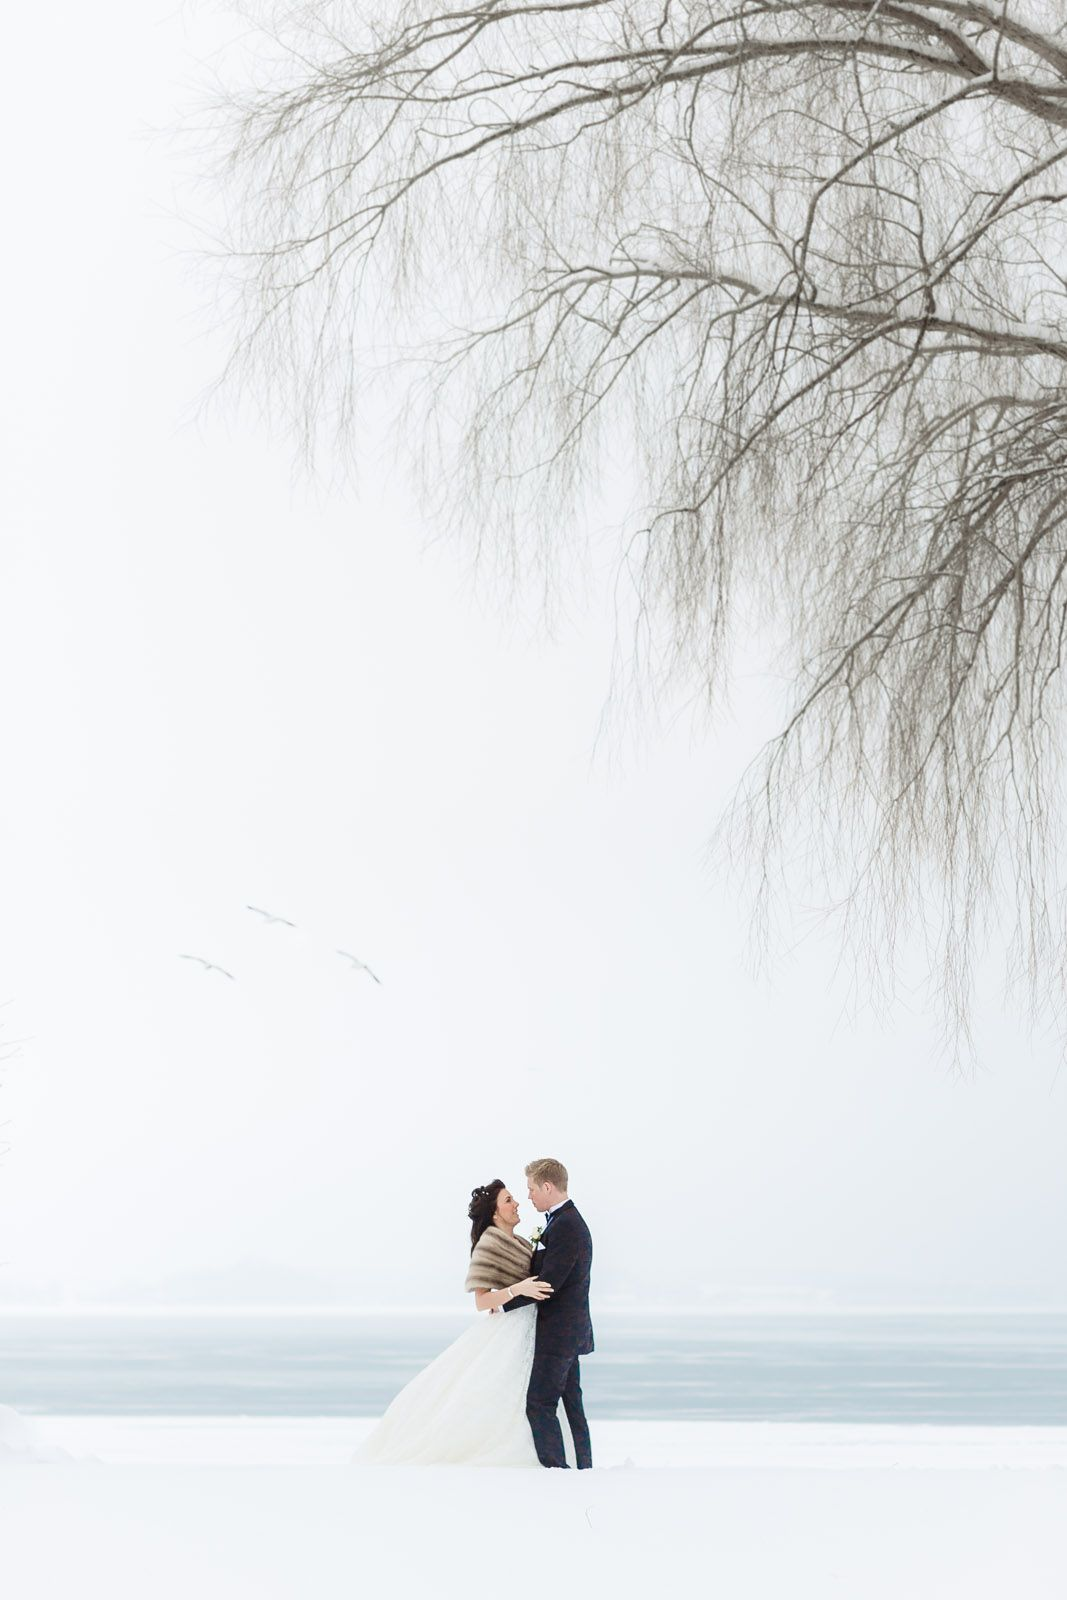 #wedding #winterwedding #vadstena #sweden #winter #vinter #snow #white #vit #weddingphotographer #anhede